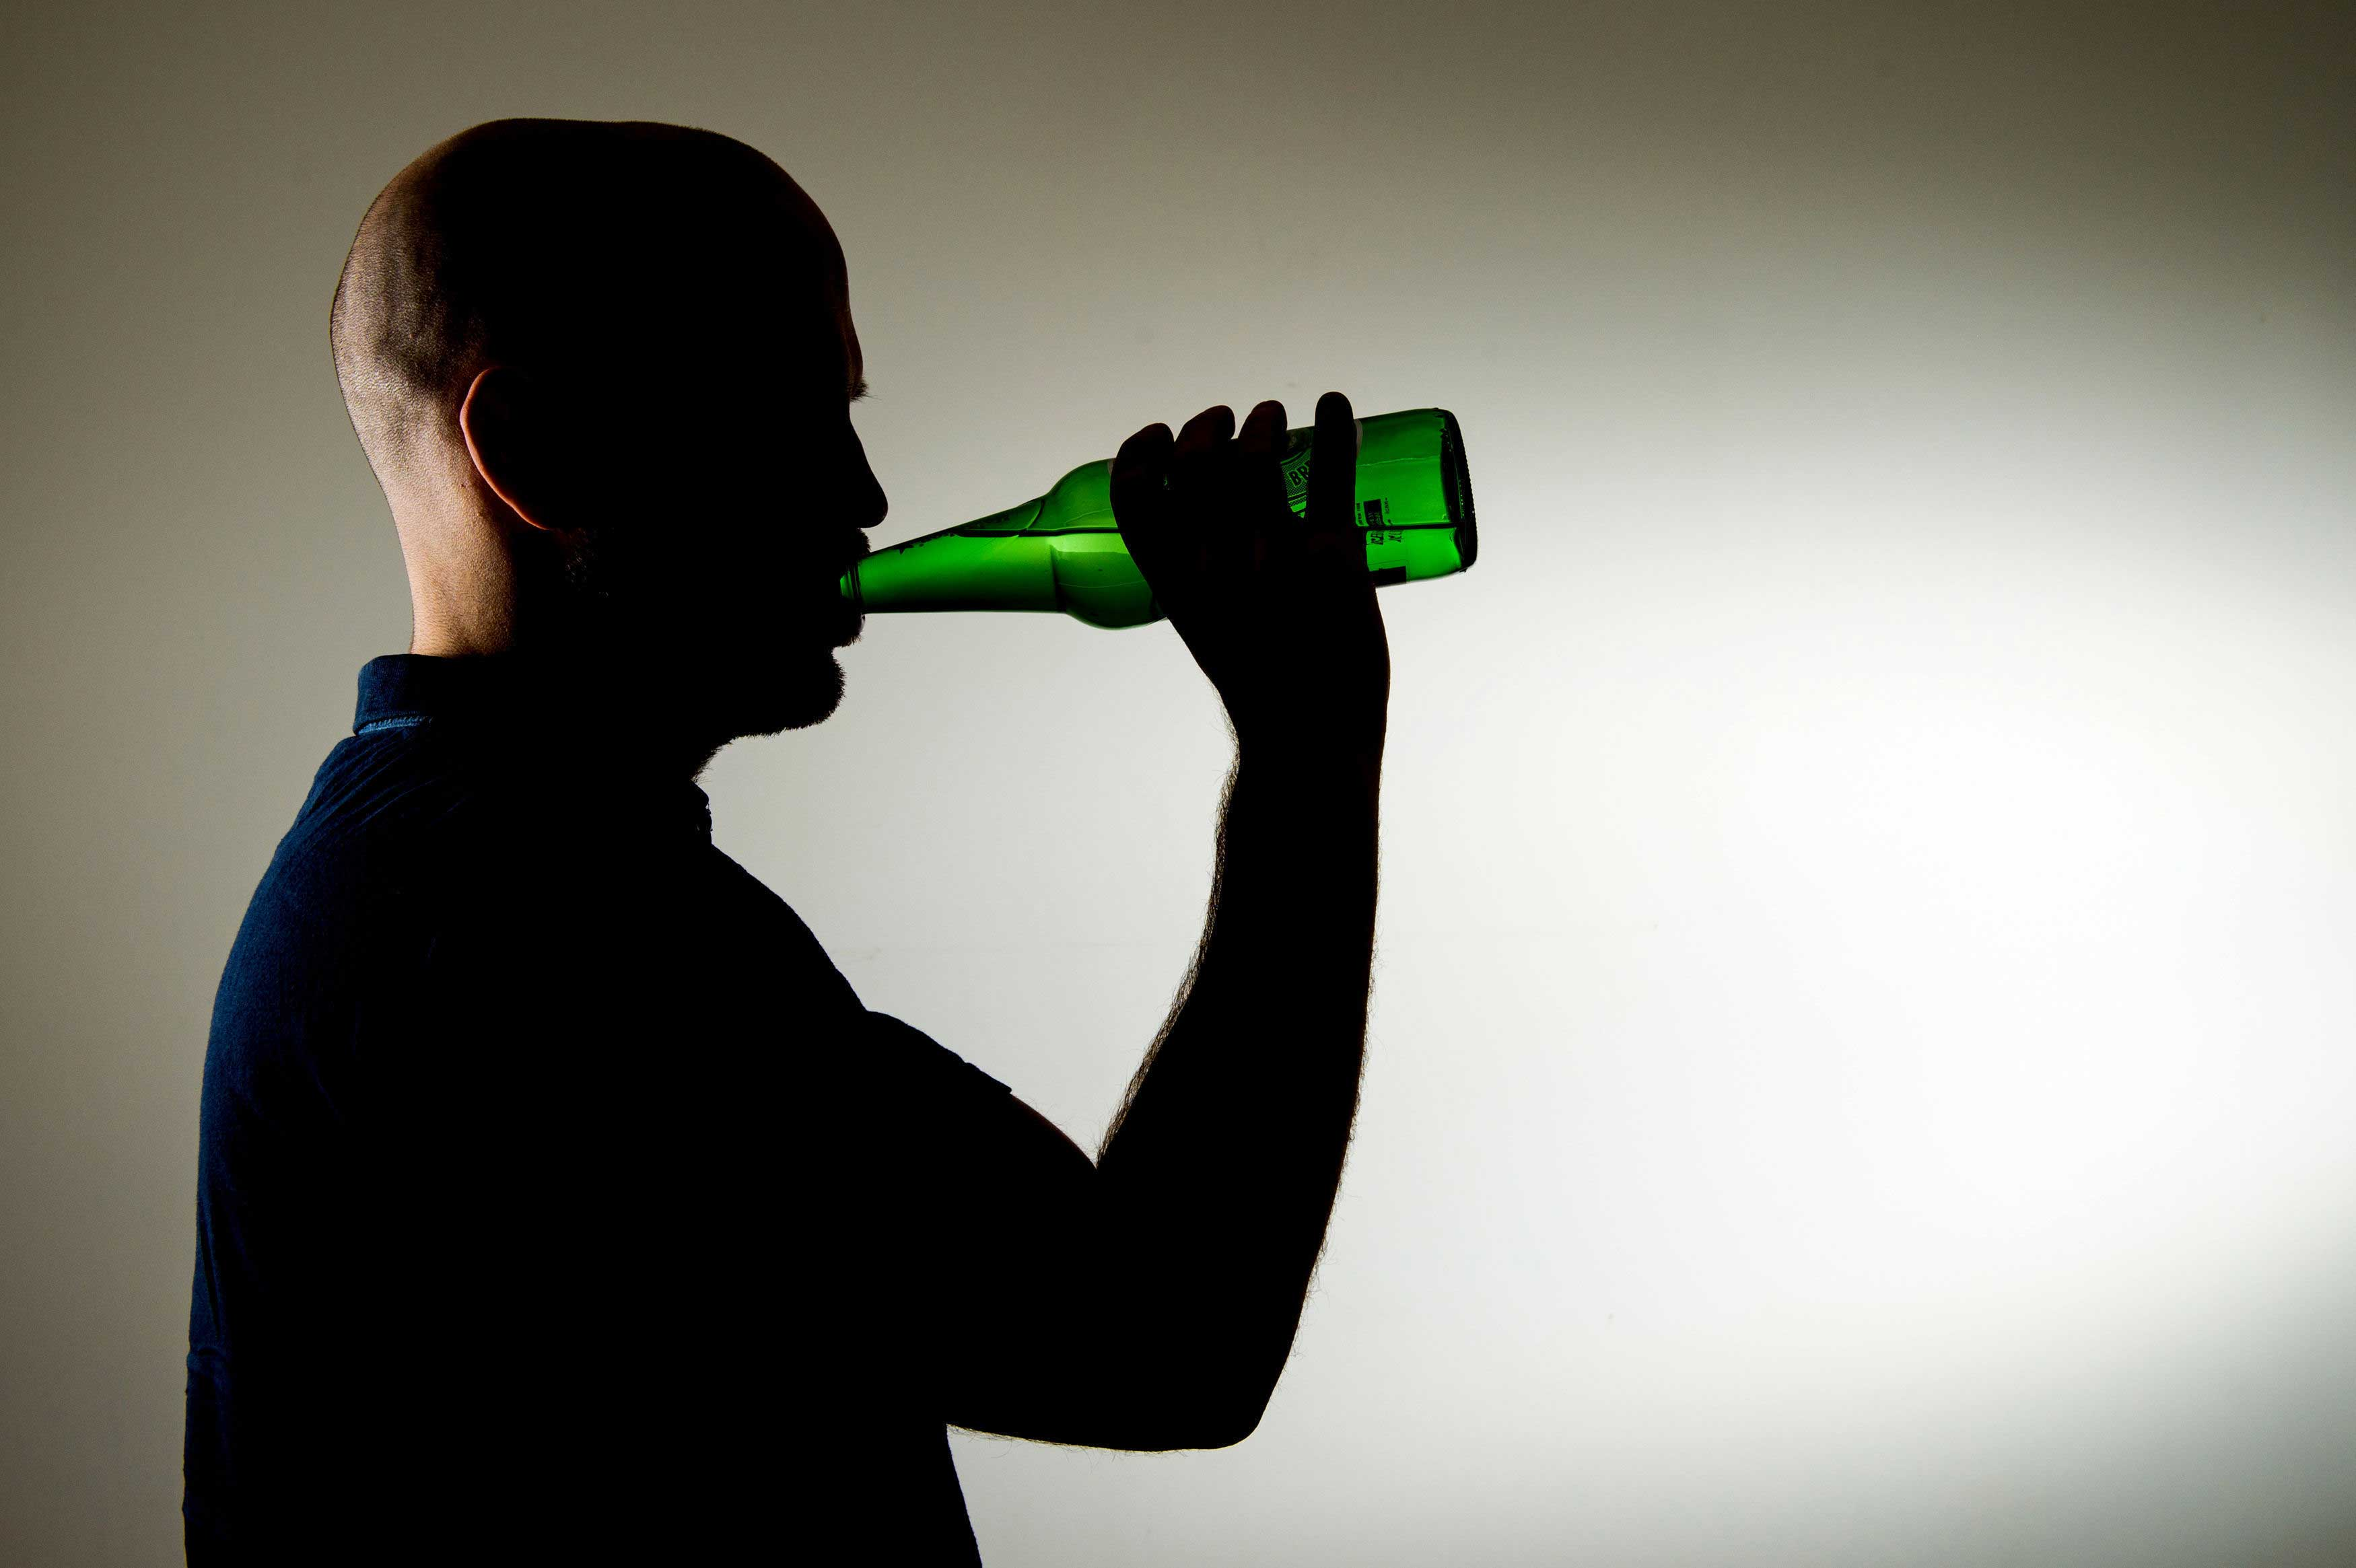 Regular excess drinking can take years off your life, study finds